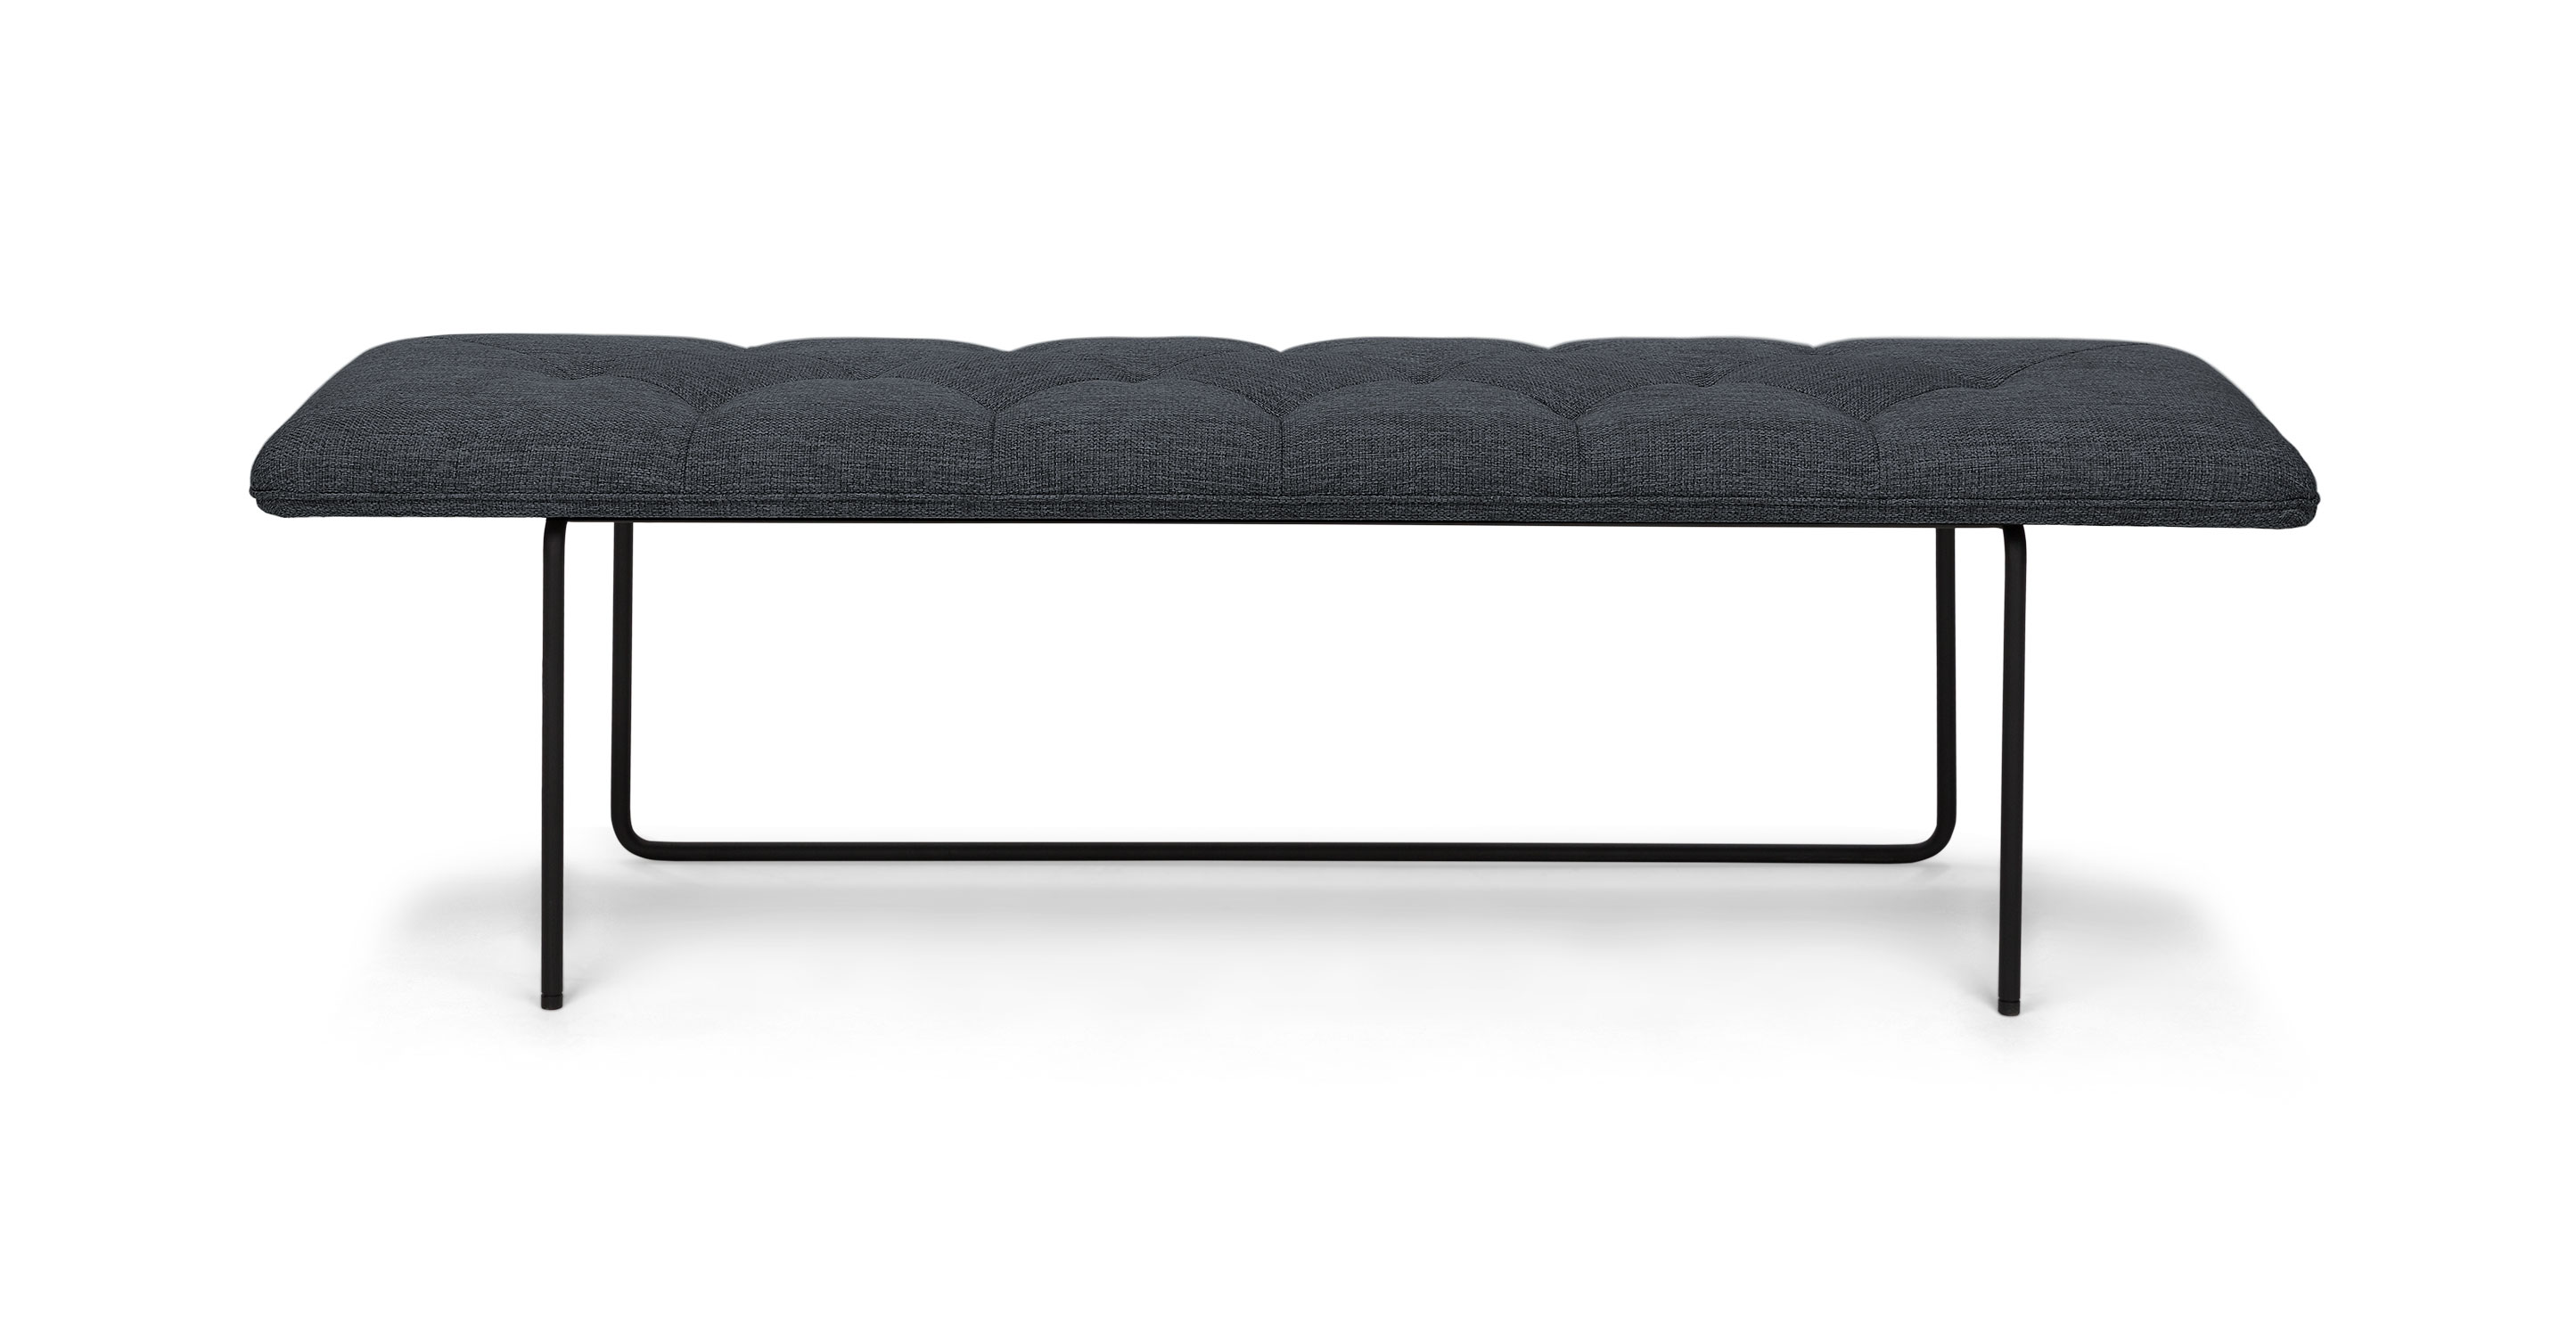 Horizon Bard Gray Bench Benches Article Modern Mid